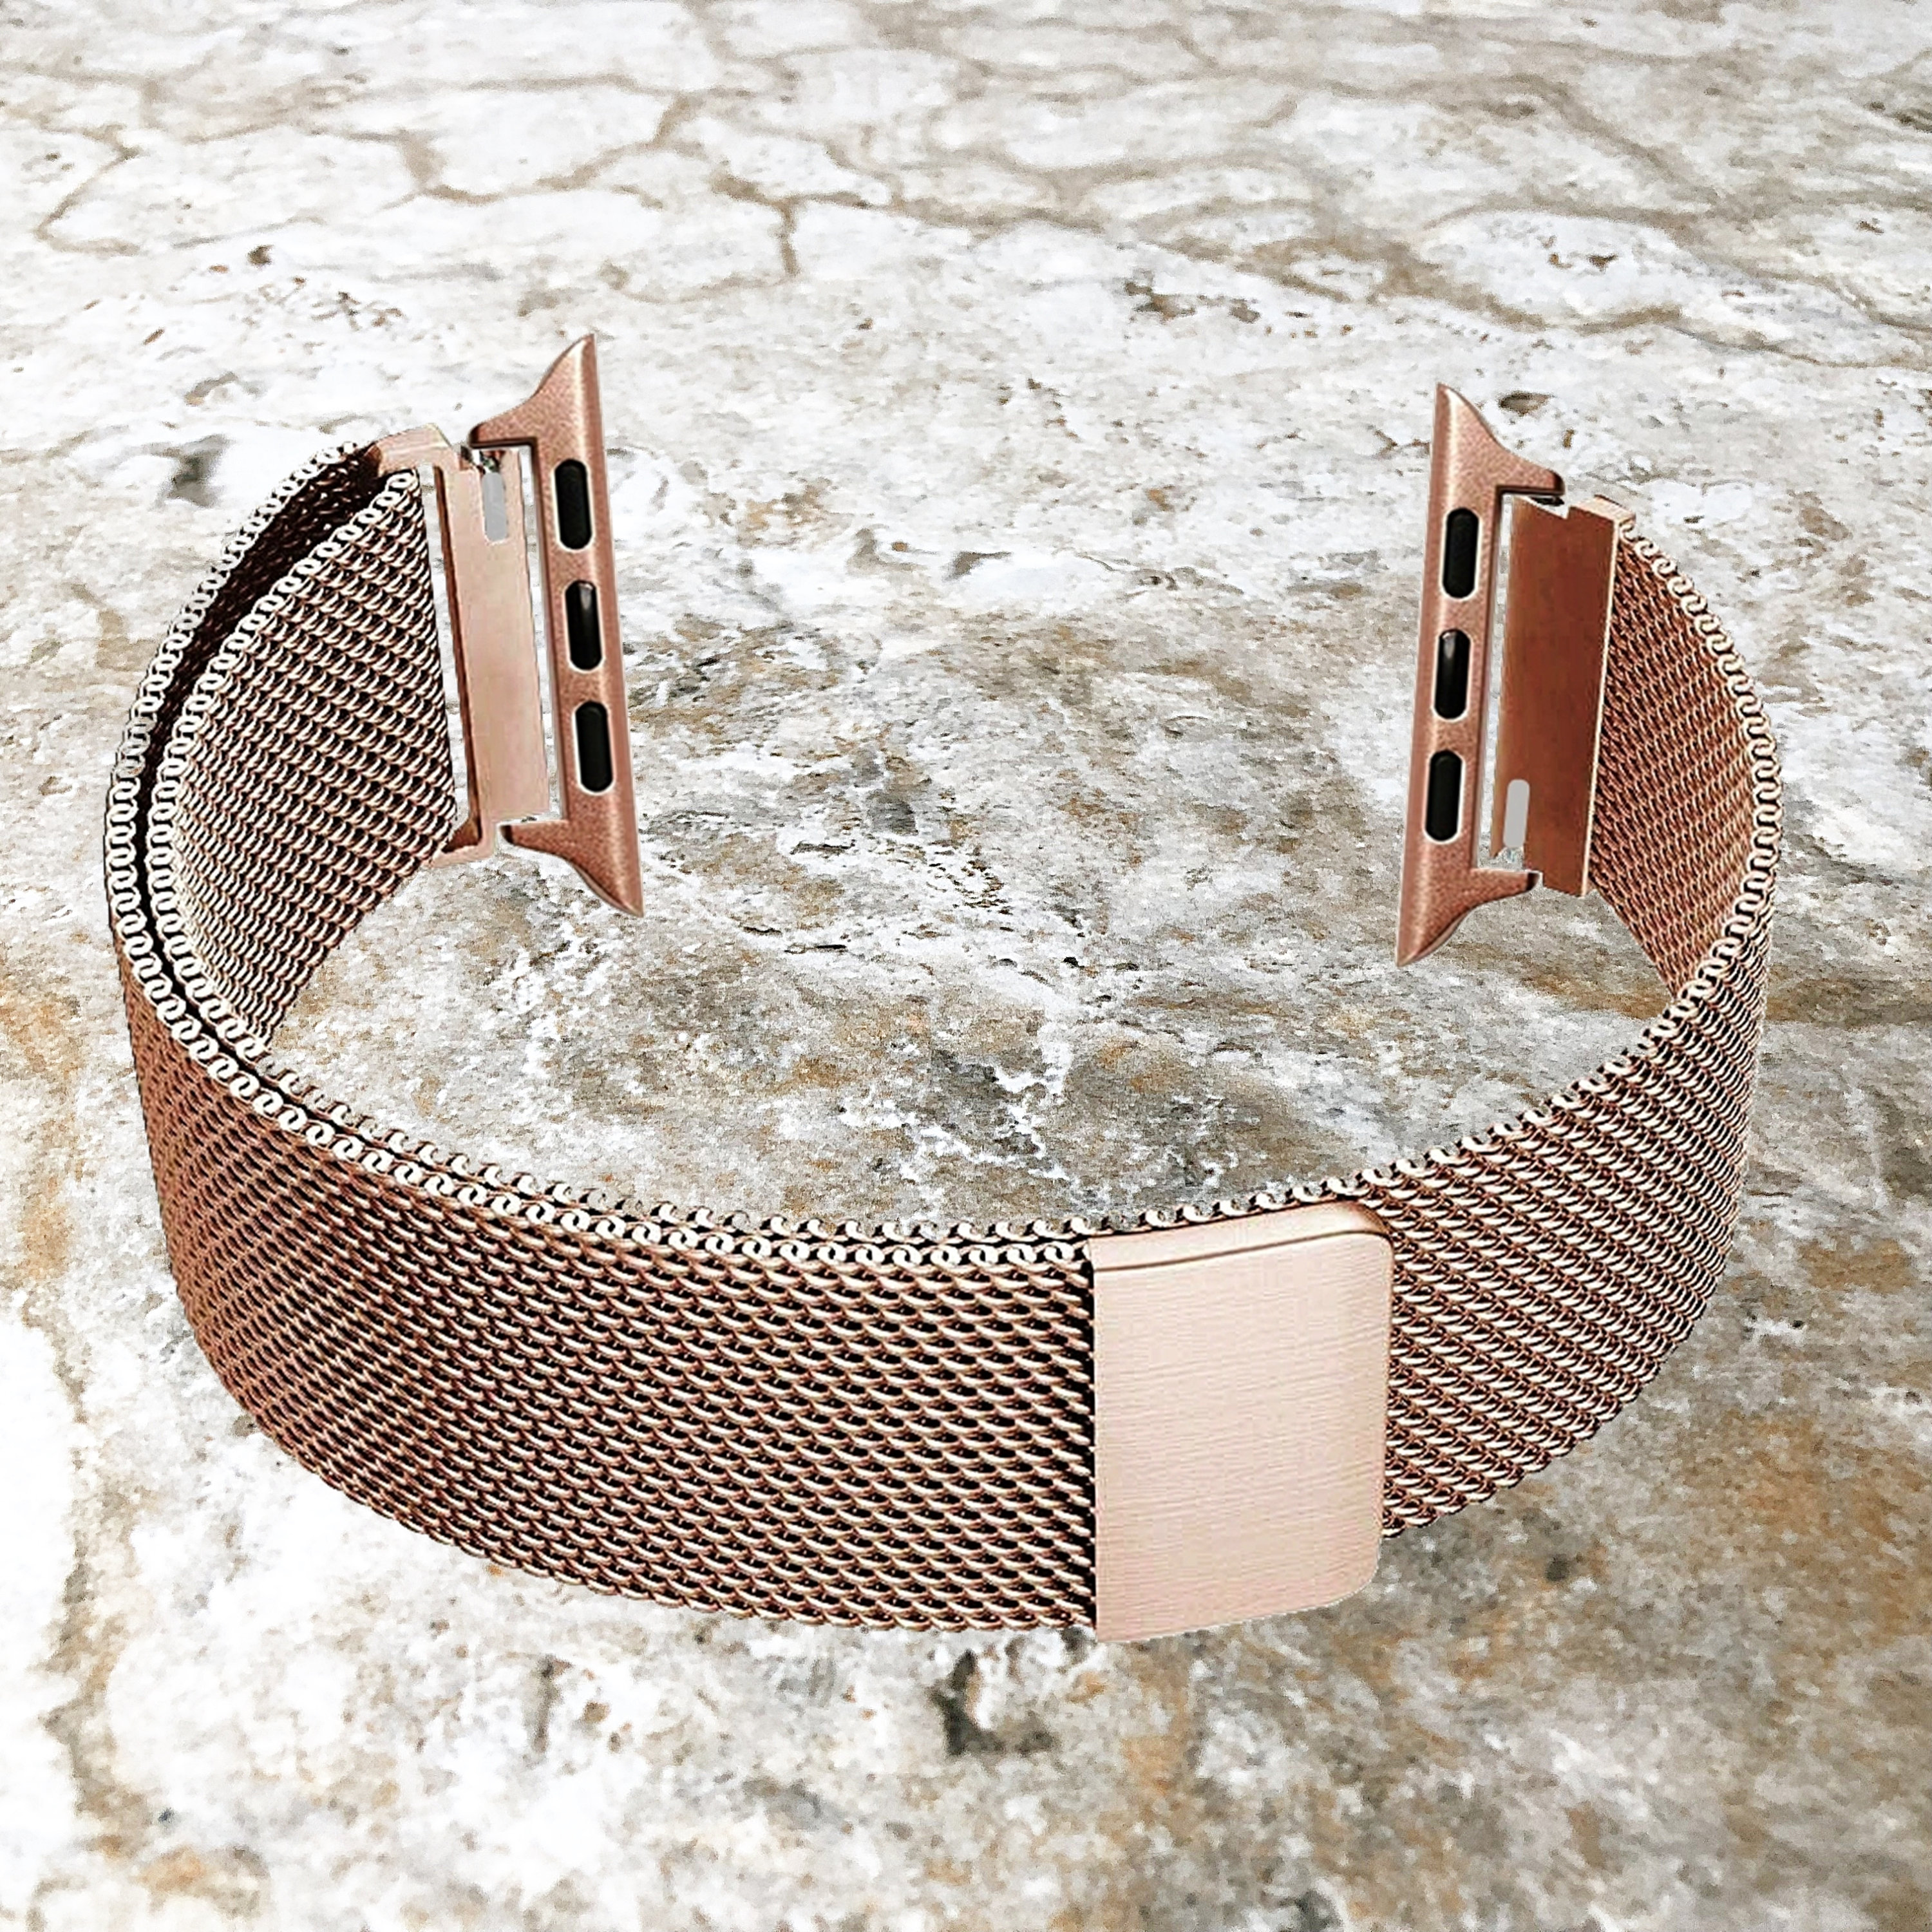 Modern Rose Gold Color Stainless Steel Adjustable Milanese Mesh Band Strap Apple Iwatch 38mm 40mm 42mm 44mm Watch Se 6 5 4 3 2 1 All Series Nickston All Rights Reserved